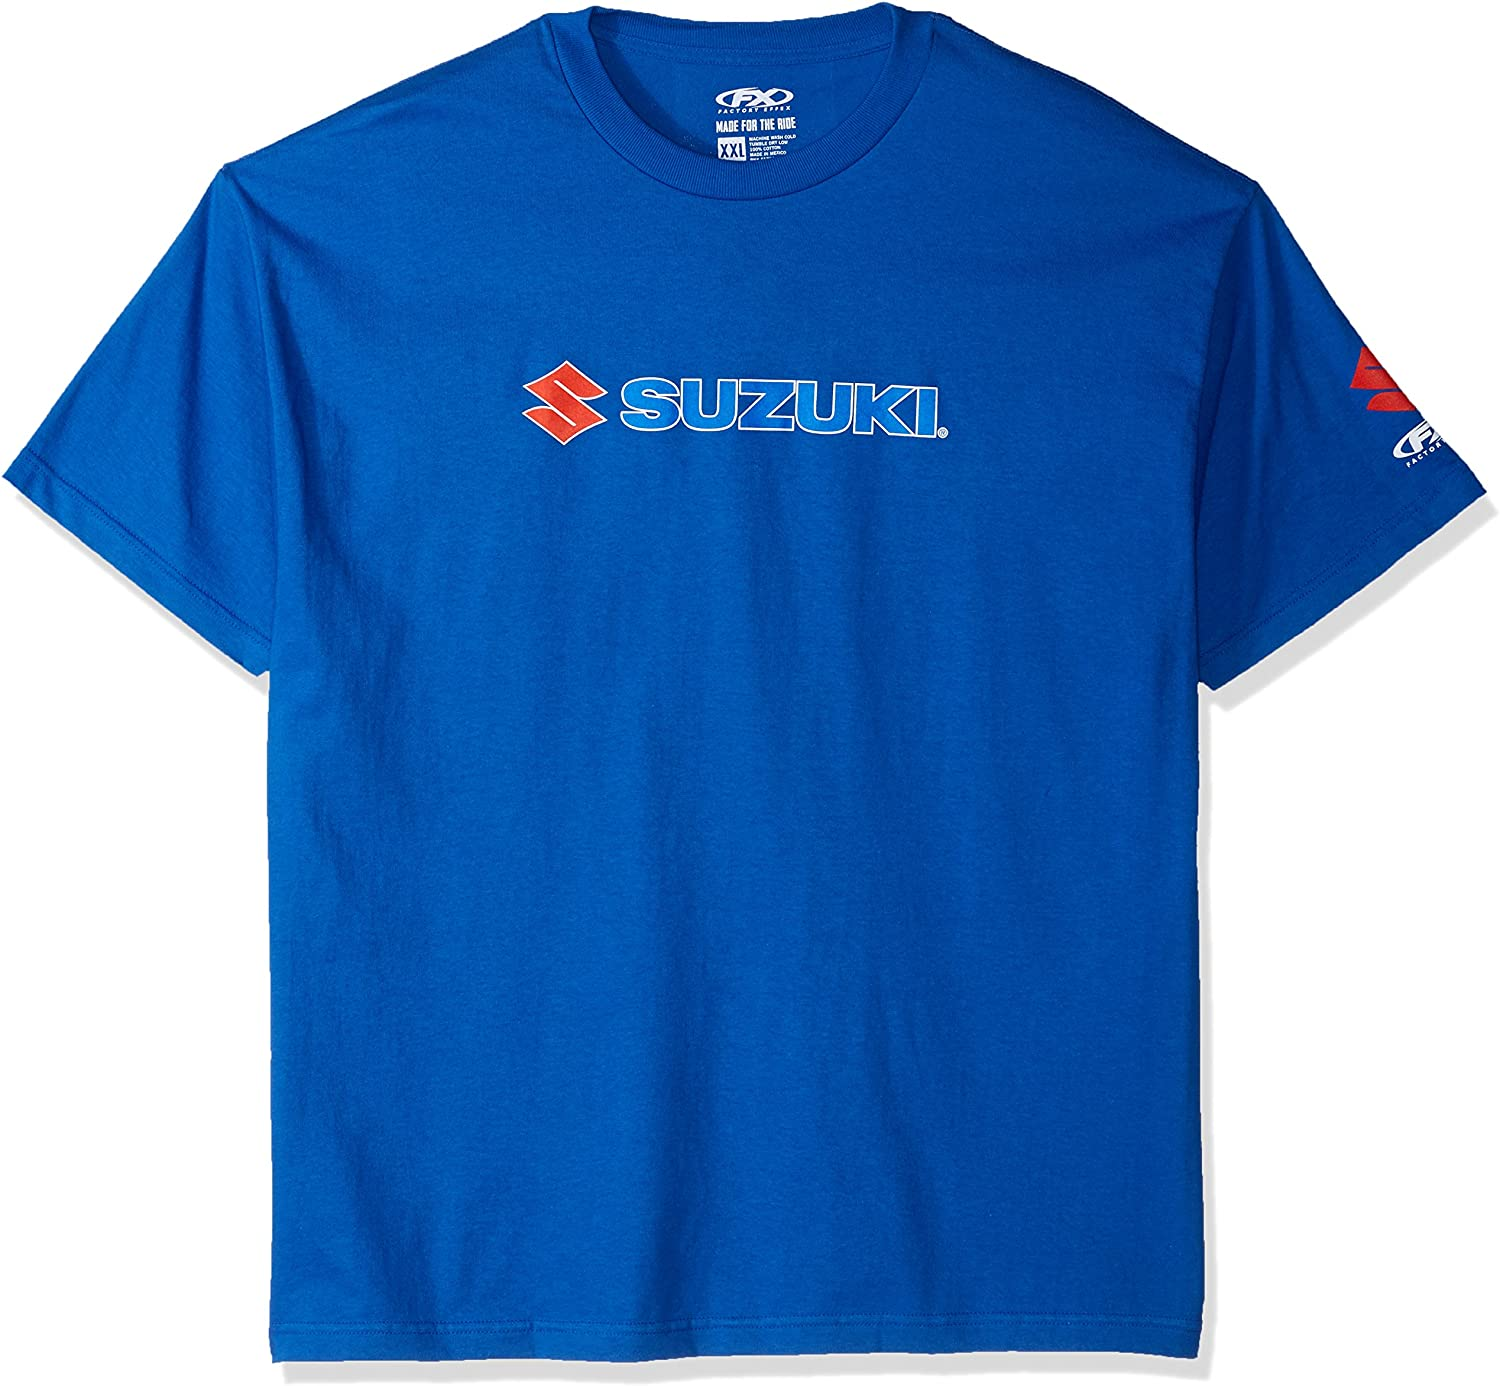 Factory Effex 15-88464  Suzuki Team T-Shirt Blue, X-Large